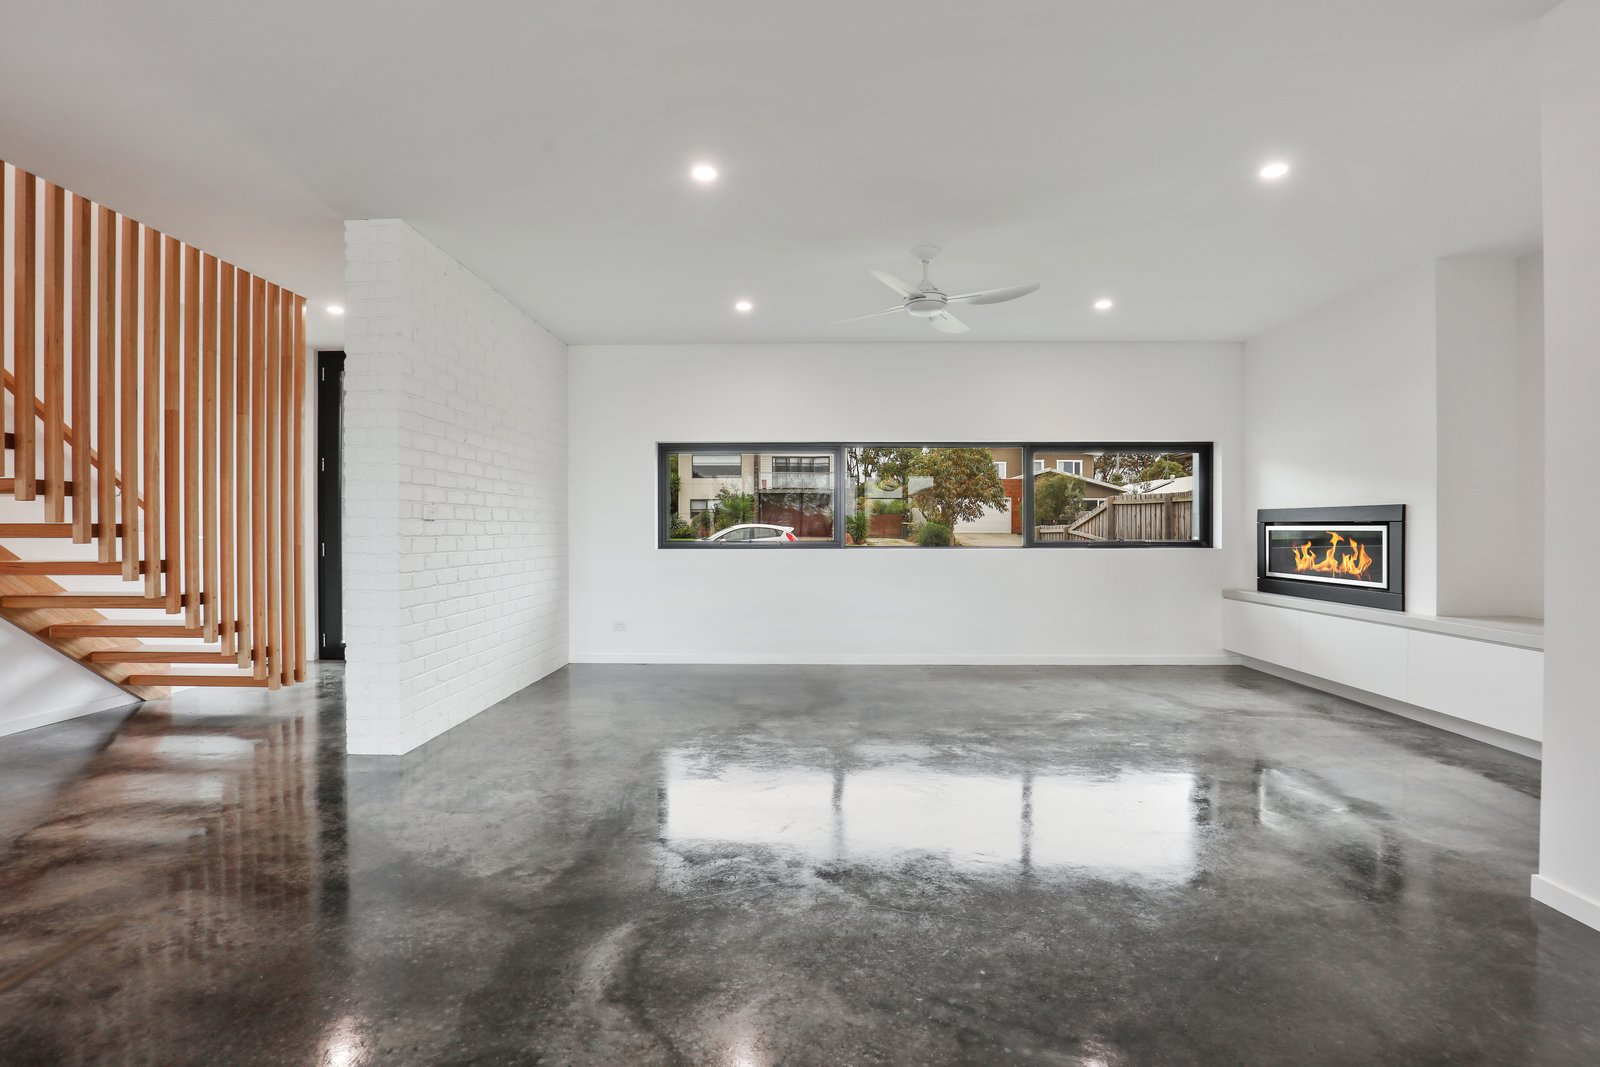 Living Room, Concrete Floor, Gas Burning Fireplace, and Recessed Lighting  Tamara Crecsent by Inverloch 3996